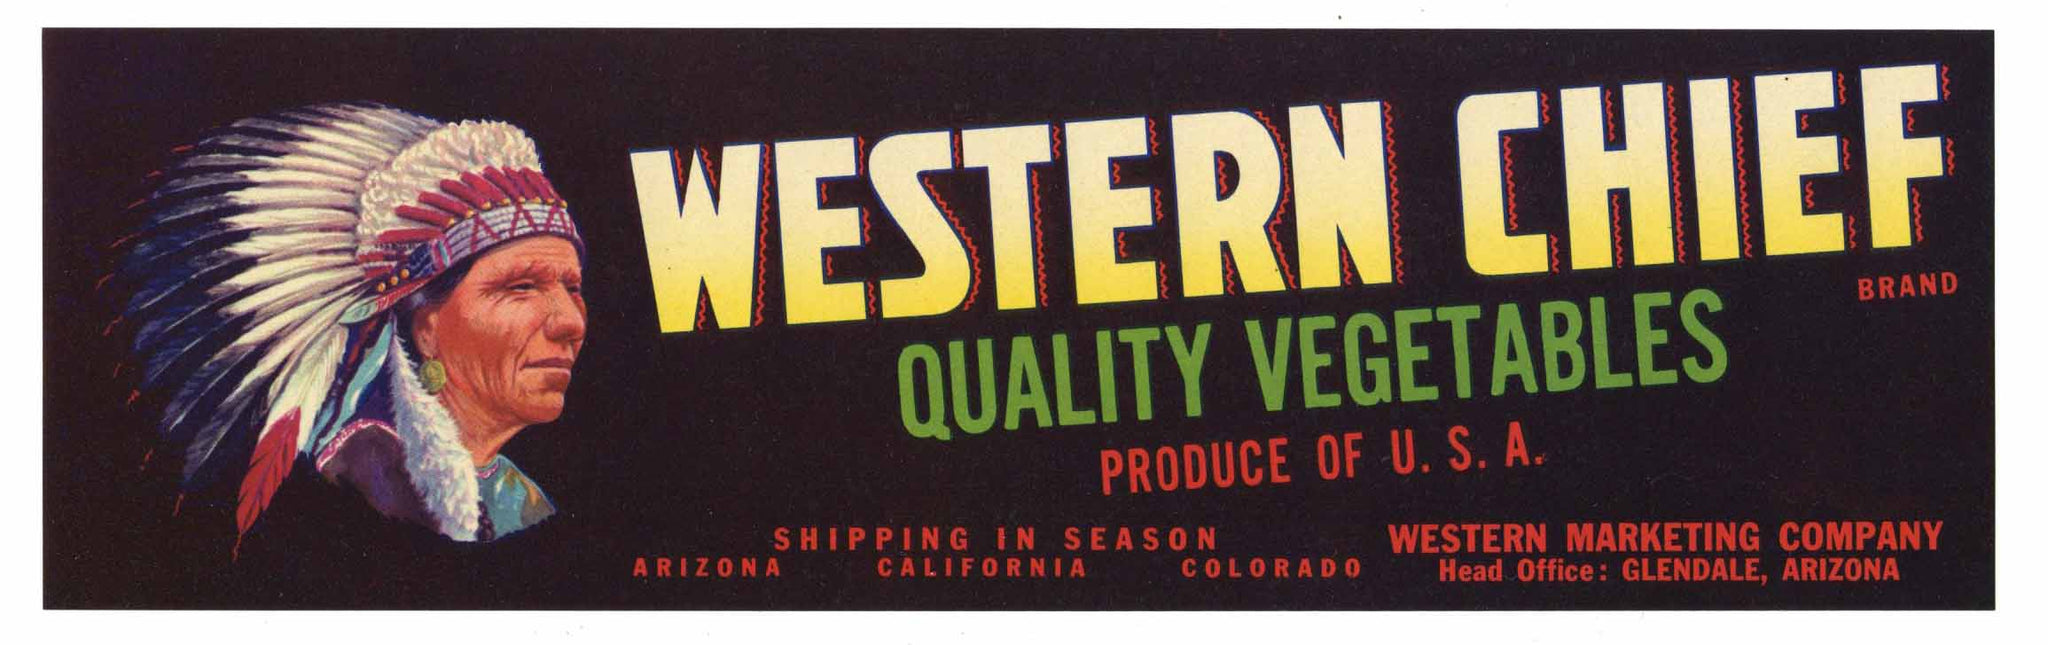 Western Chief Brand Vintage Arizona Vegetable Crate Label